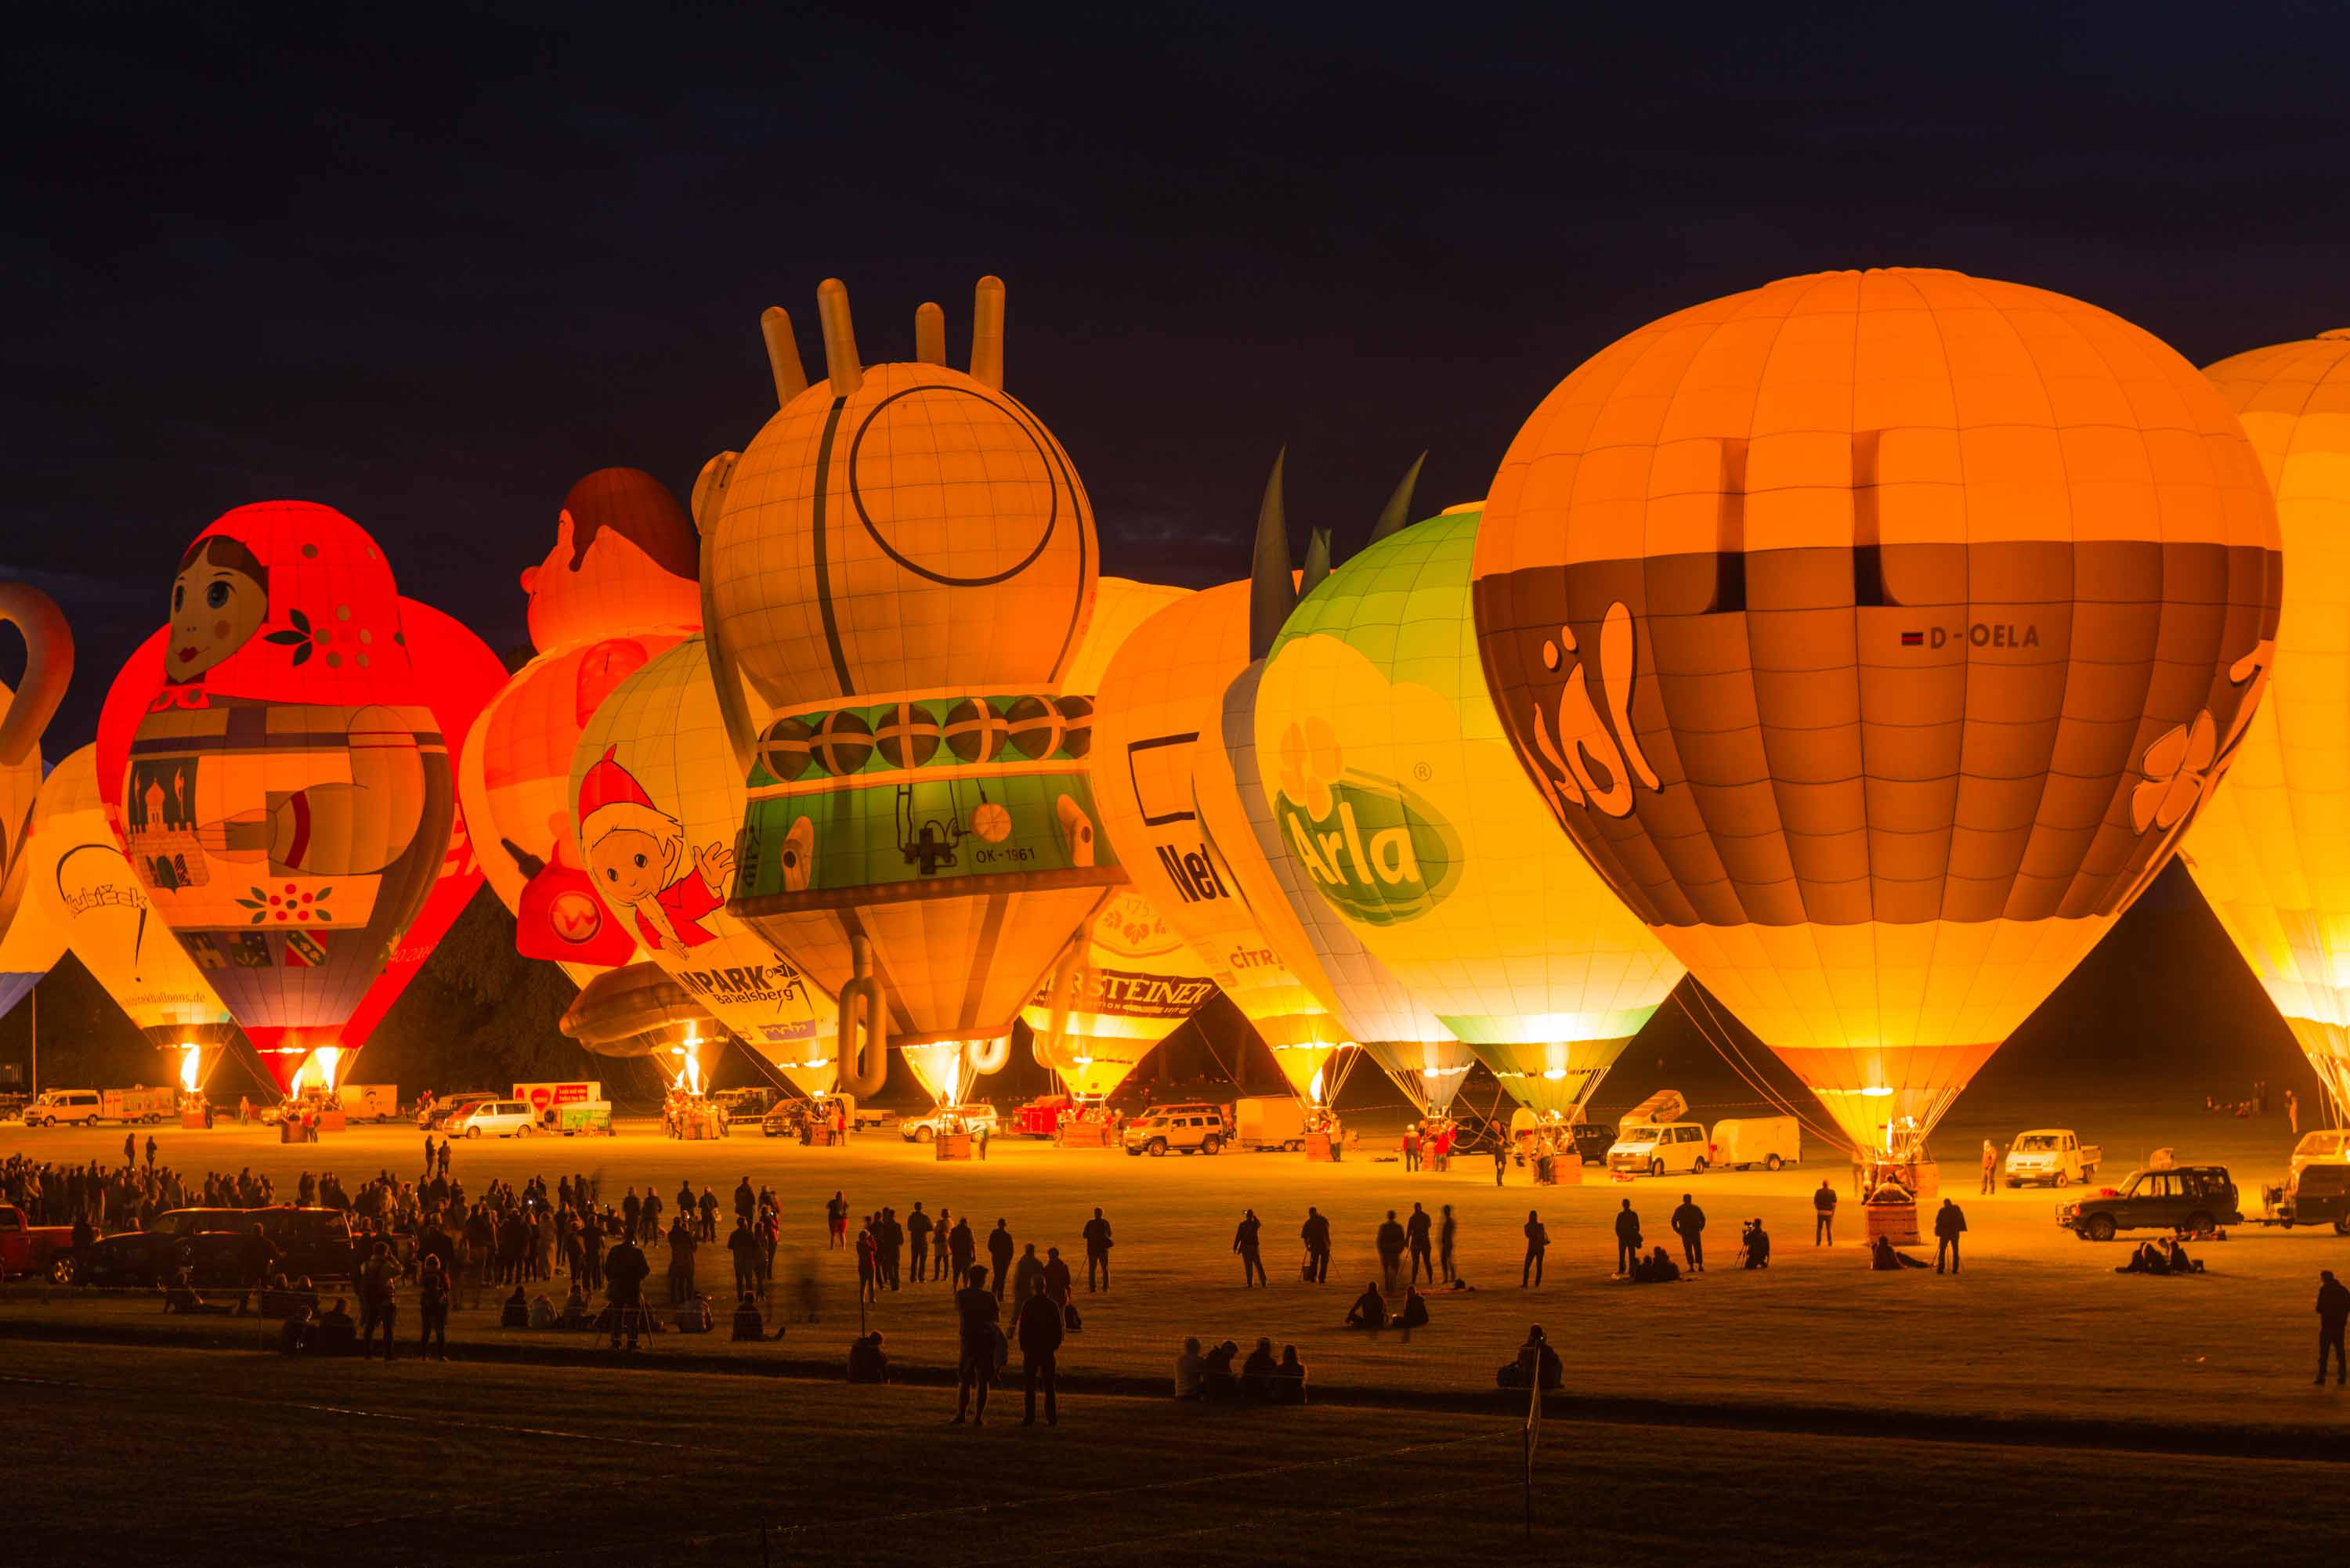 12 96895_Balloon_Glowing.jpg